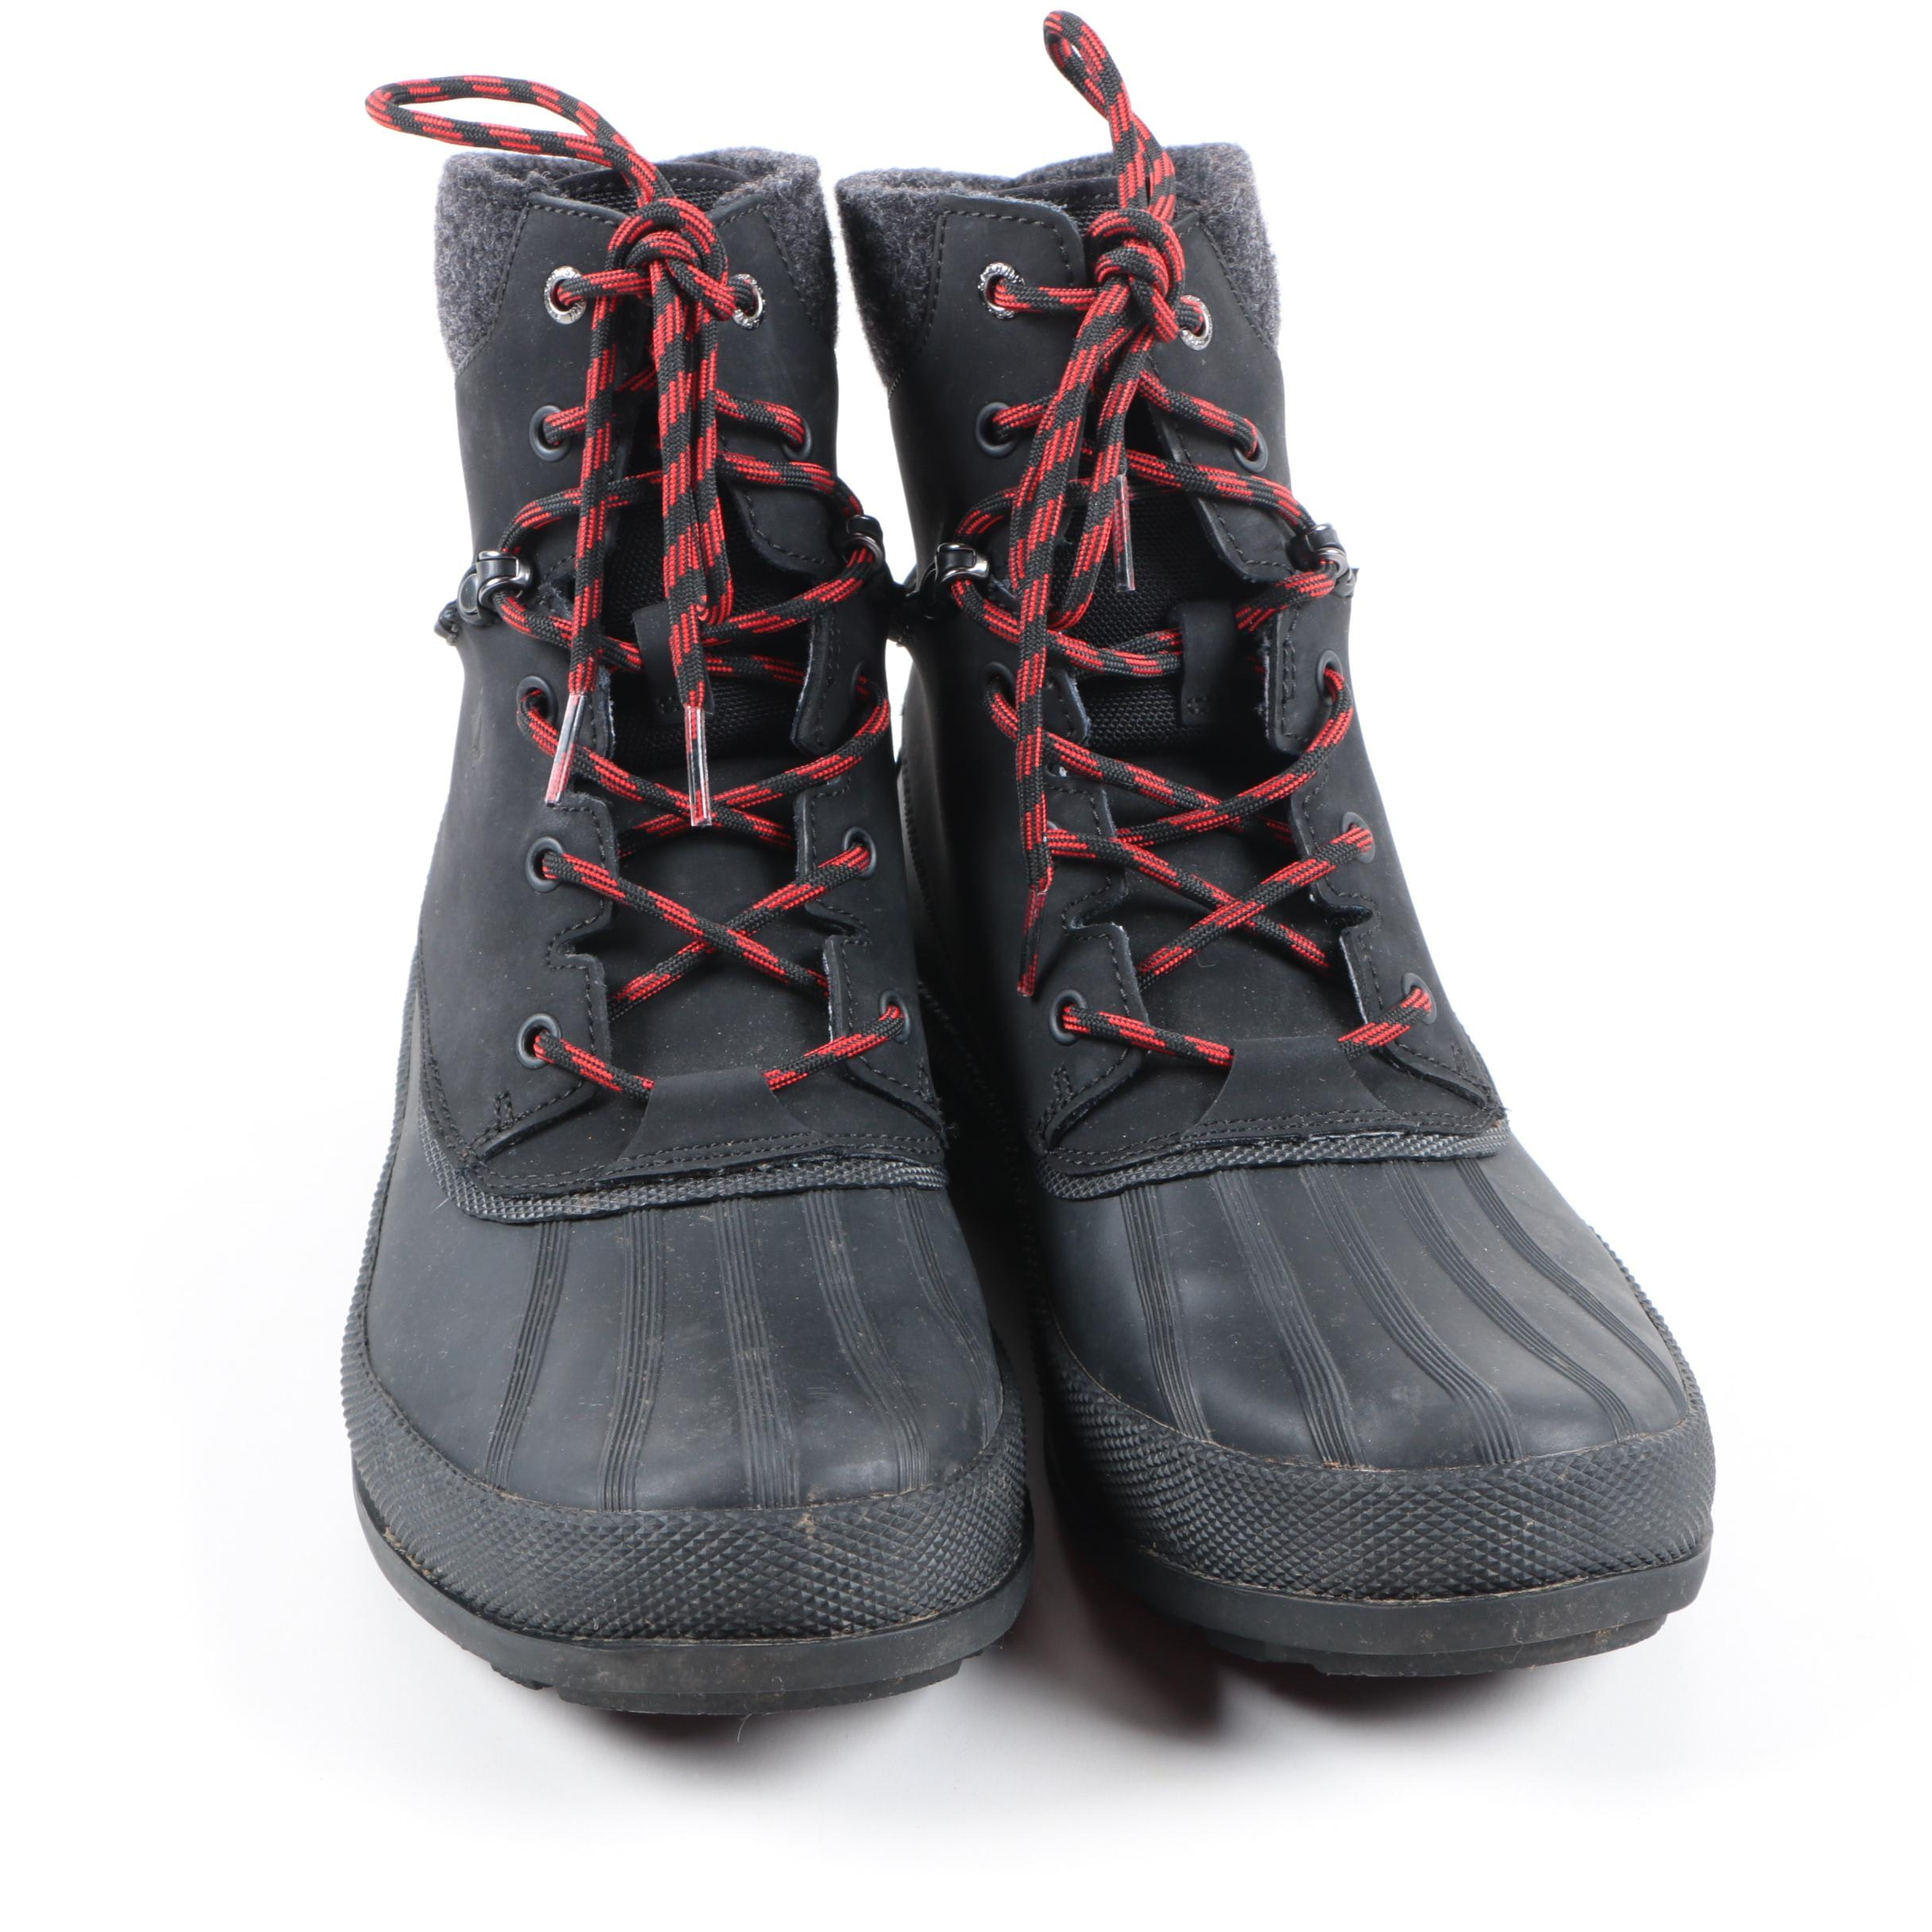 Men's Sperry Cold Weather Boots